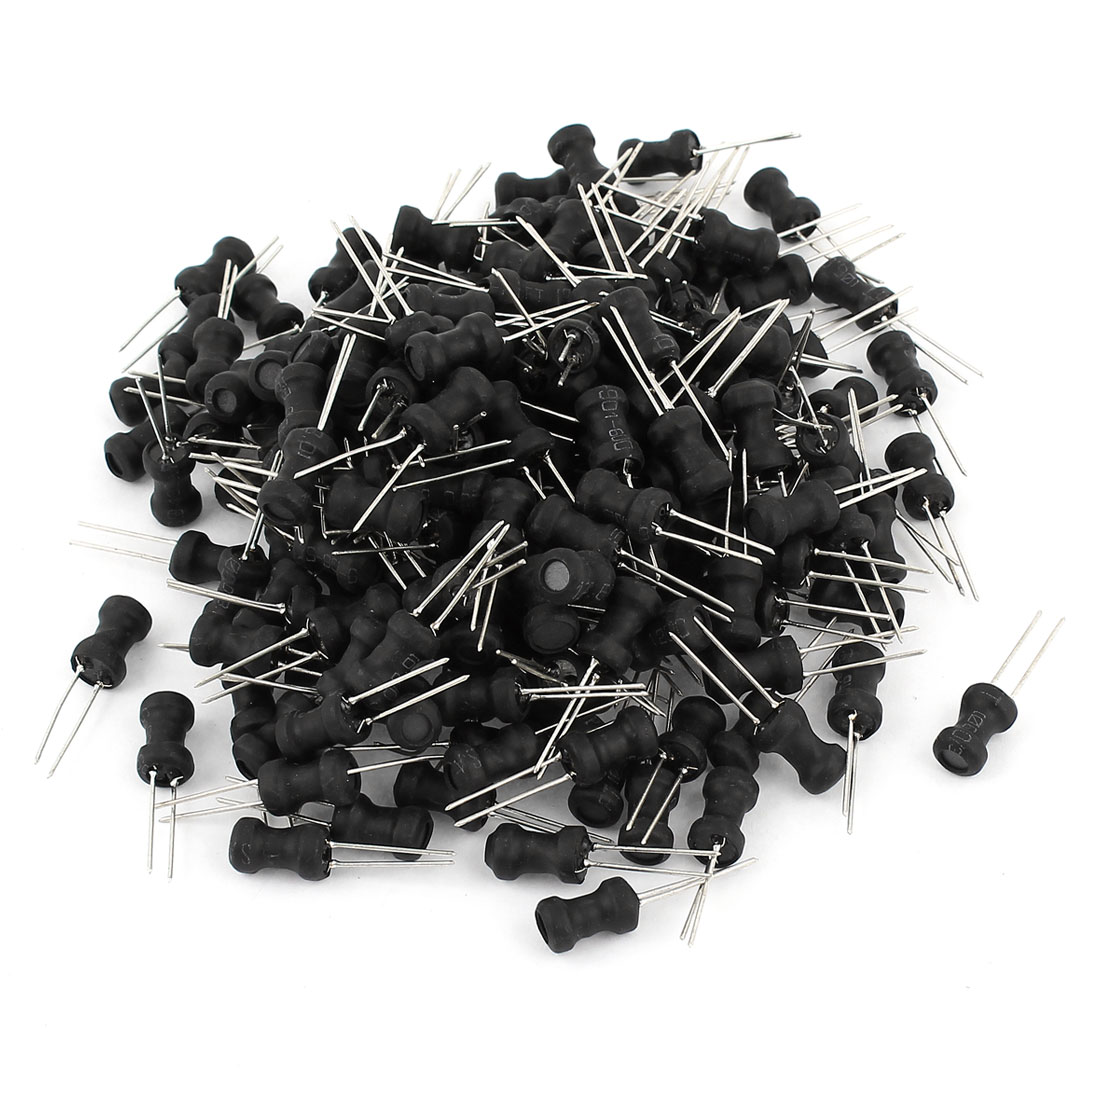 200pcs PCB Board Radial Lead Inductor 56uH 700mA 6x10mm 10% Tolerance